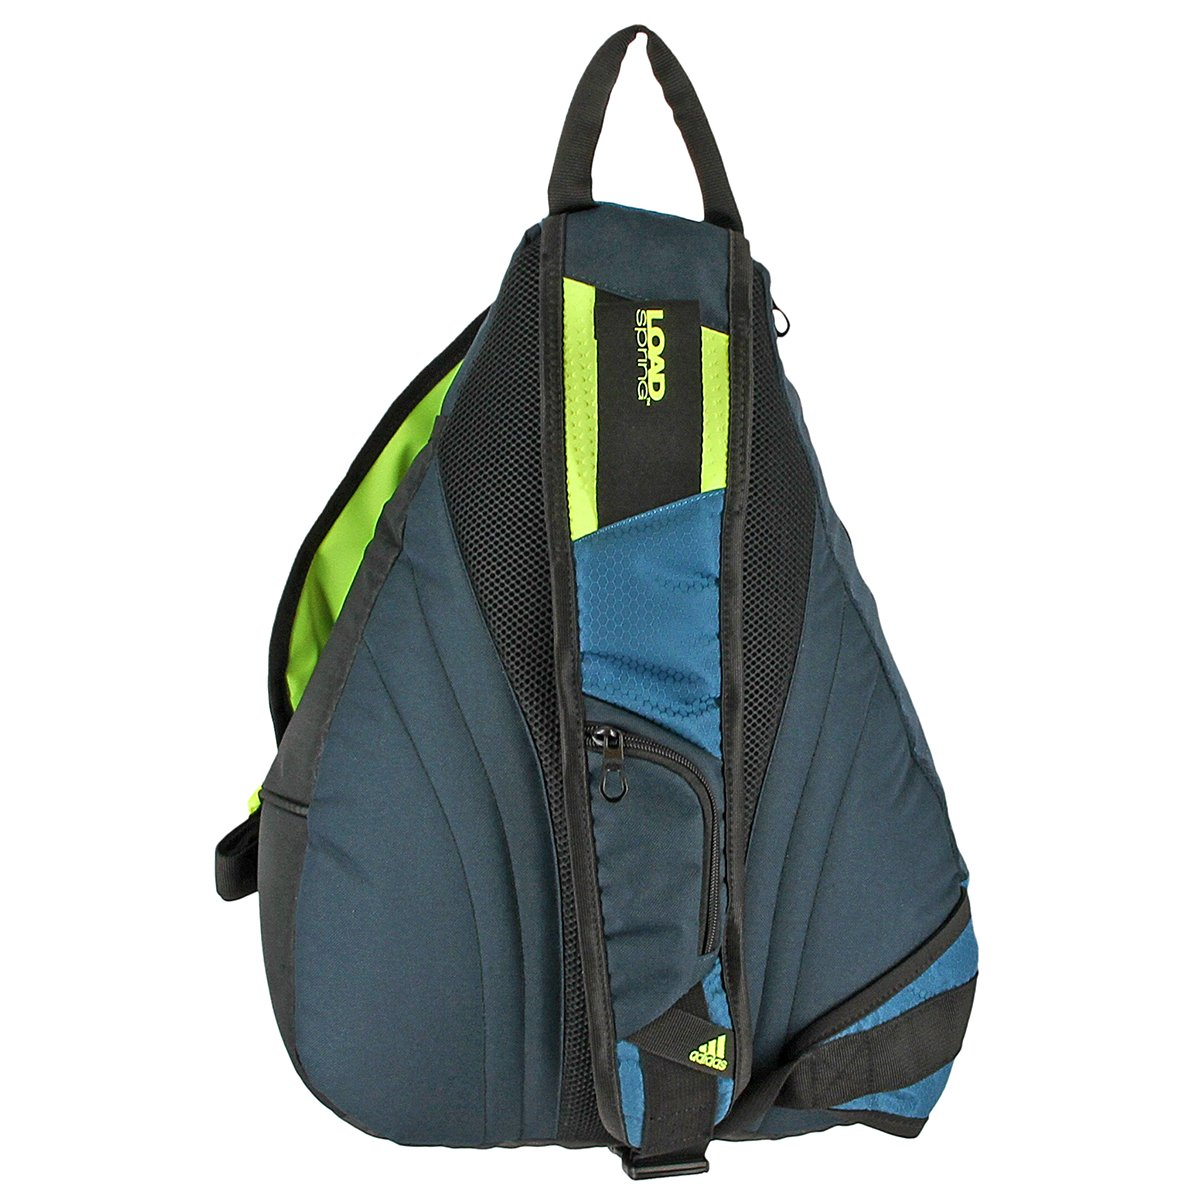 00d3e741ac The results of the research capital sling backpack